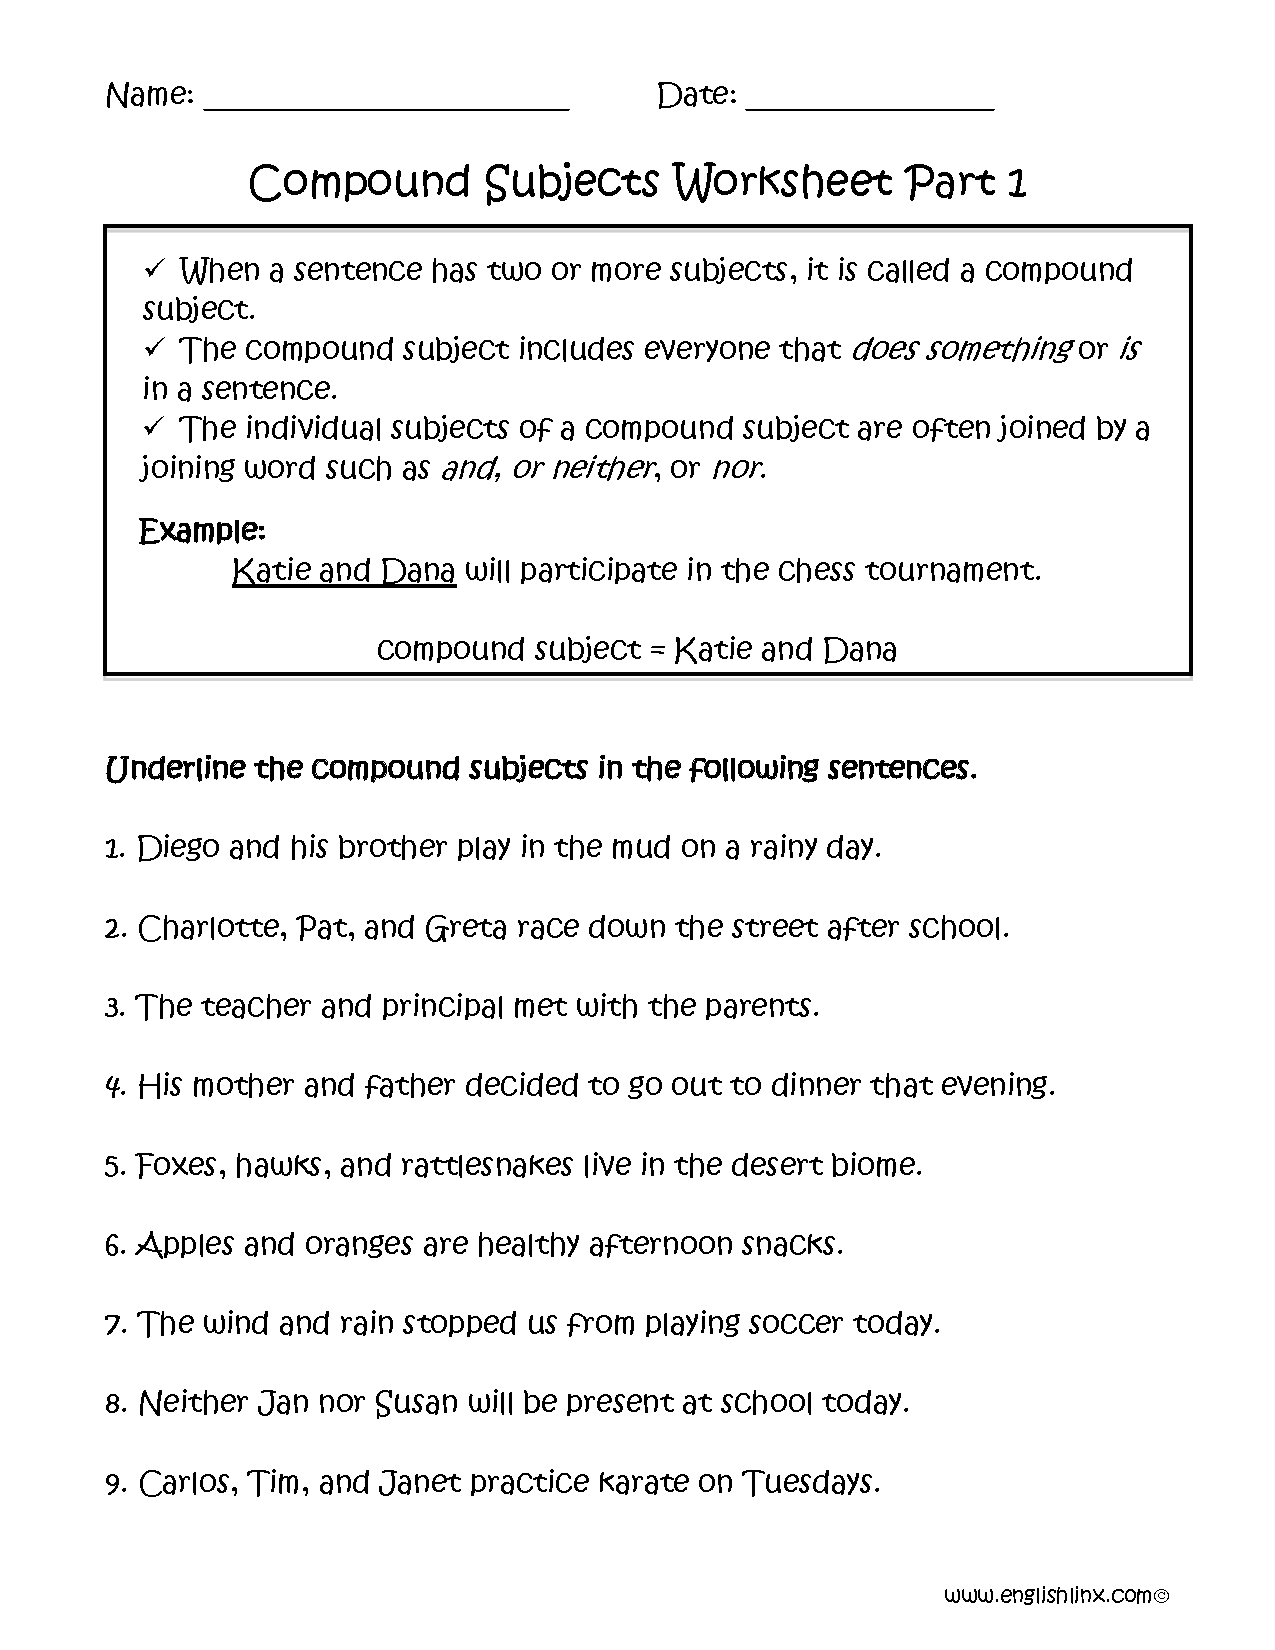 hight resolution of https://cute766.info/compound-subject-worksheet-part-1-subject-and-predicate/